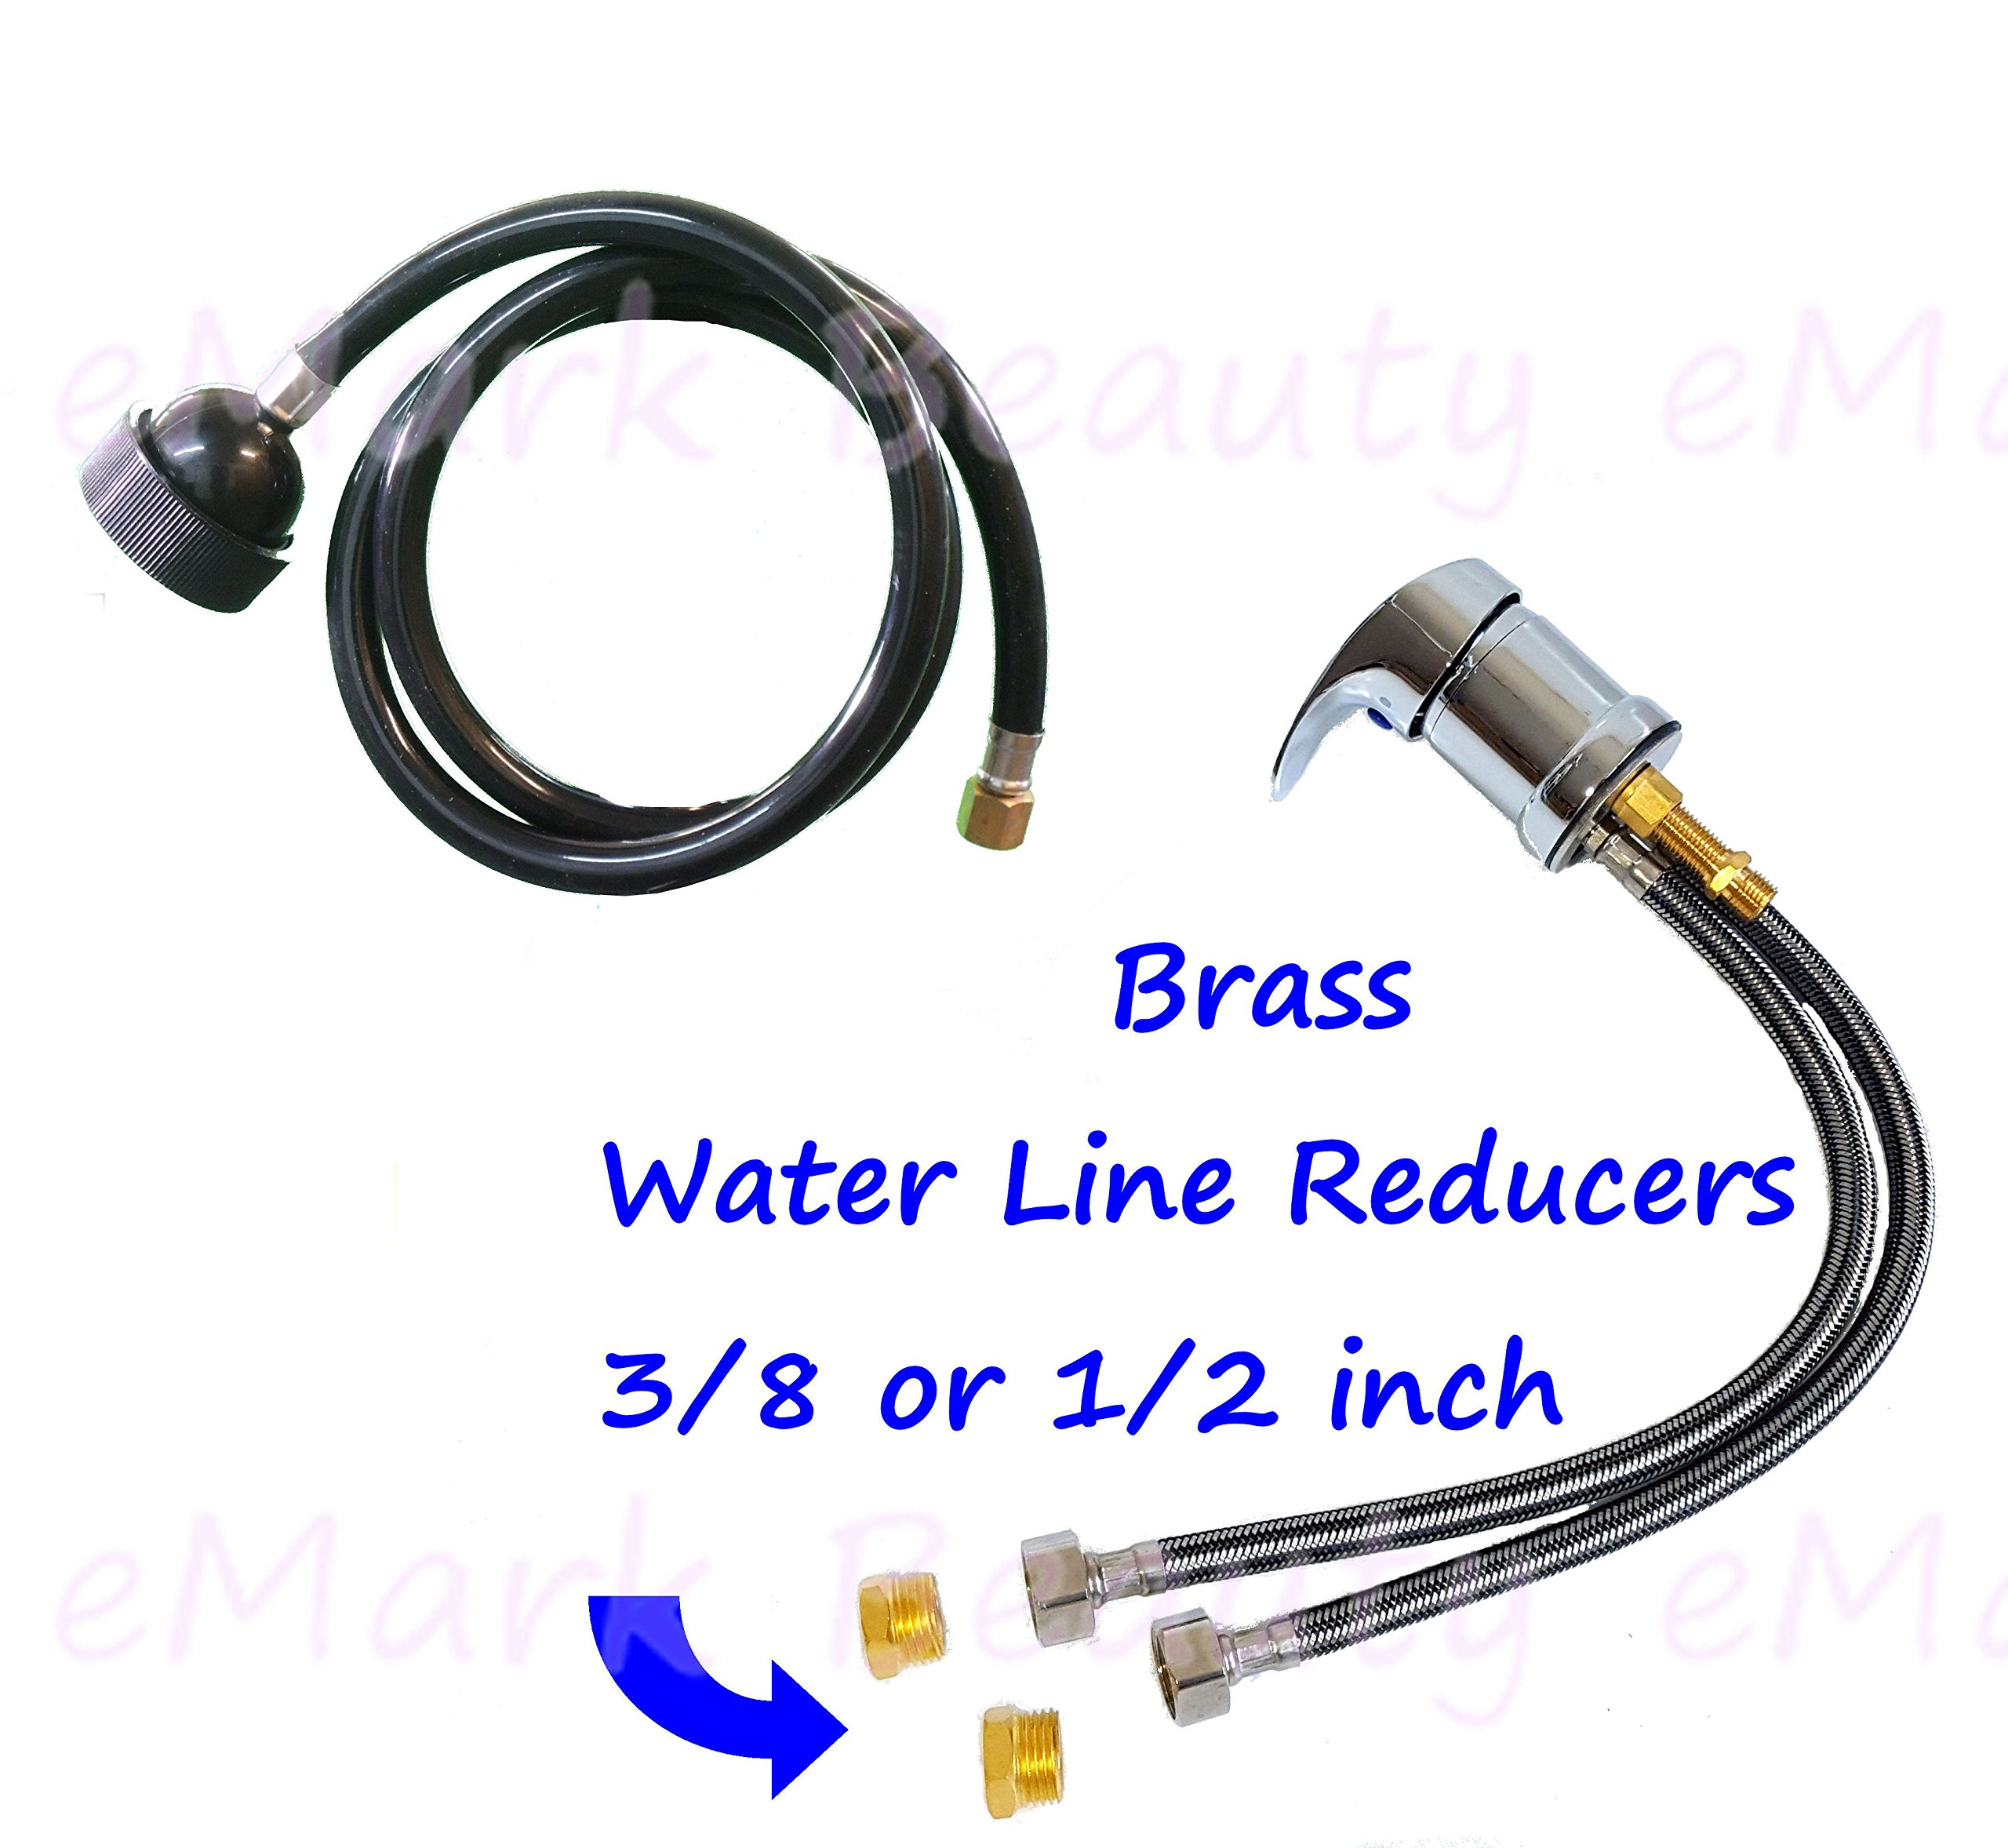 eMark Faucet and Spray Hose for Beauty Salon Shampoo Bowl Parts Kit with Reducers Included - 1164SH